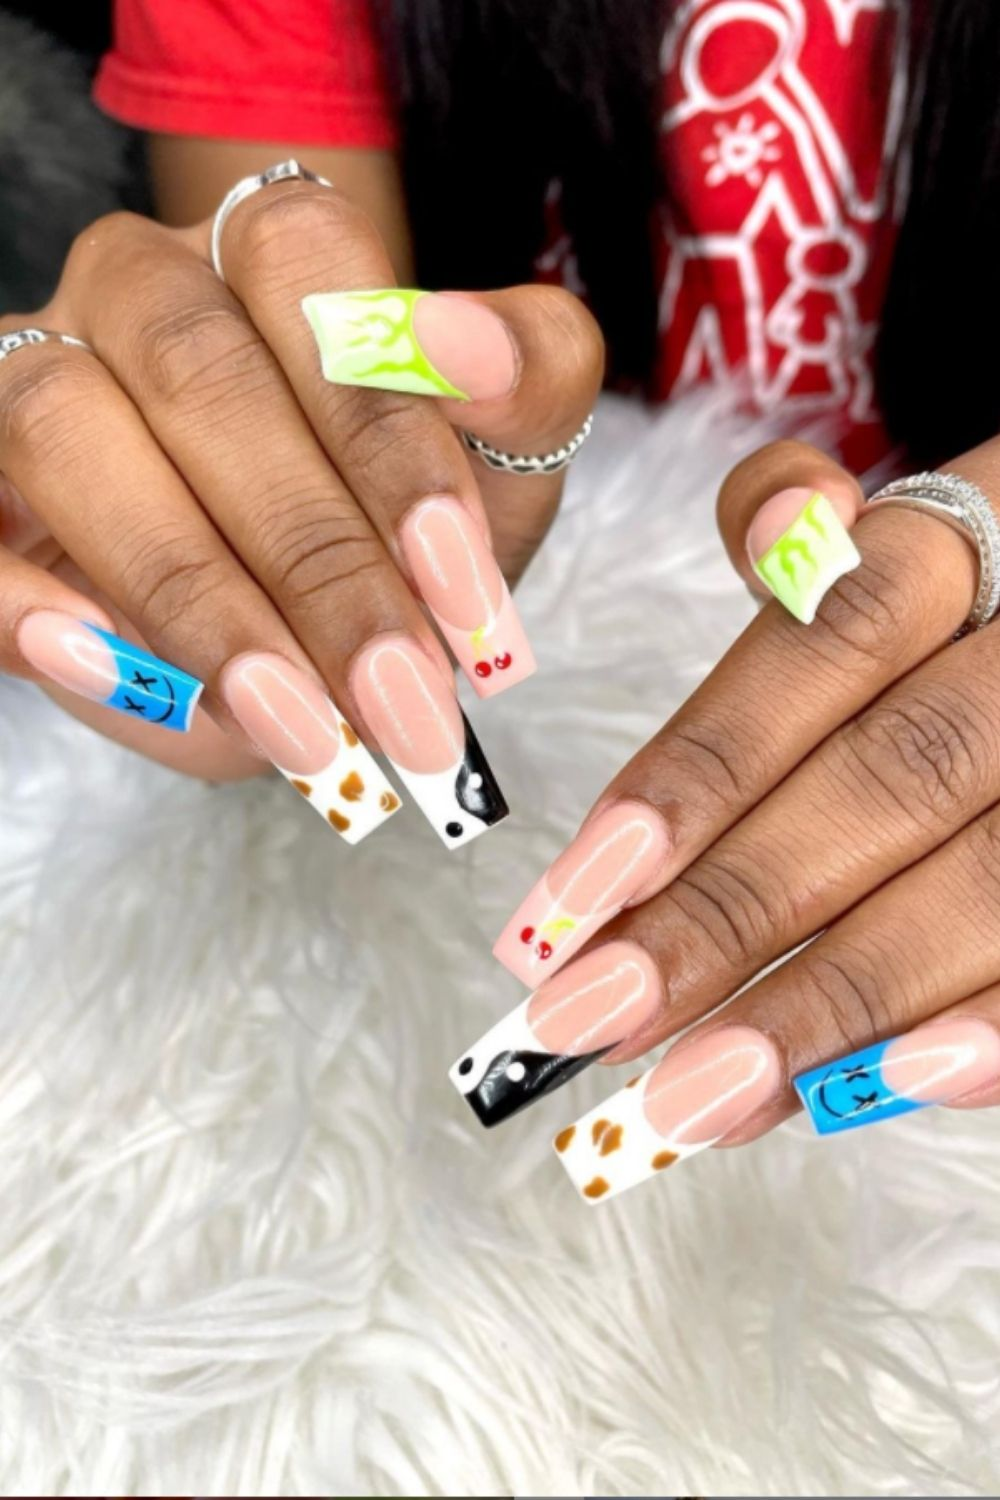 Cherry and smiley face long nail design